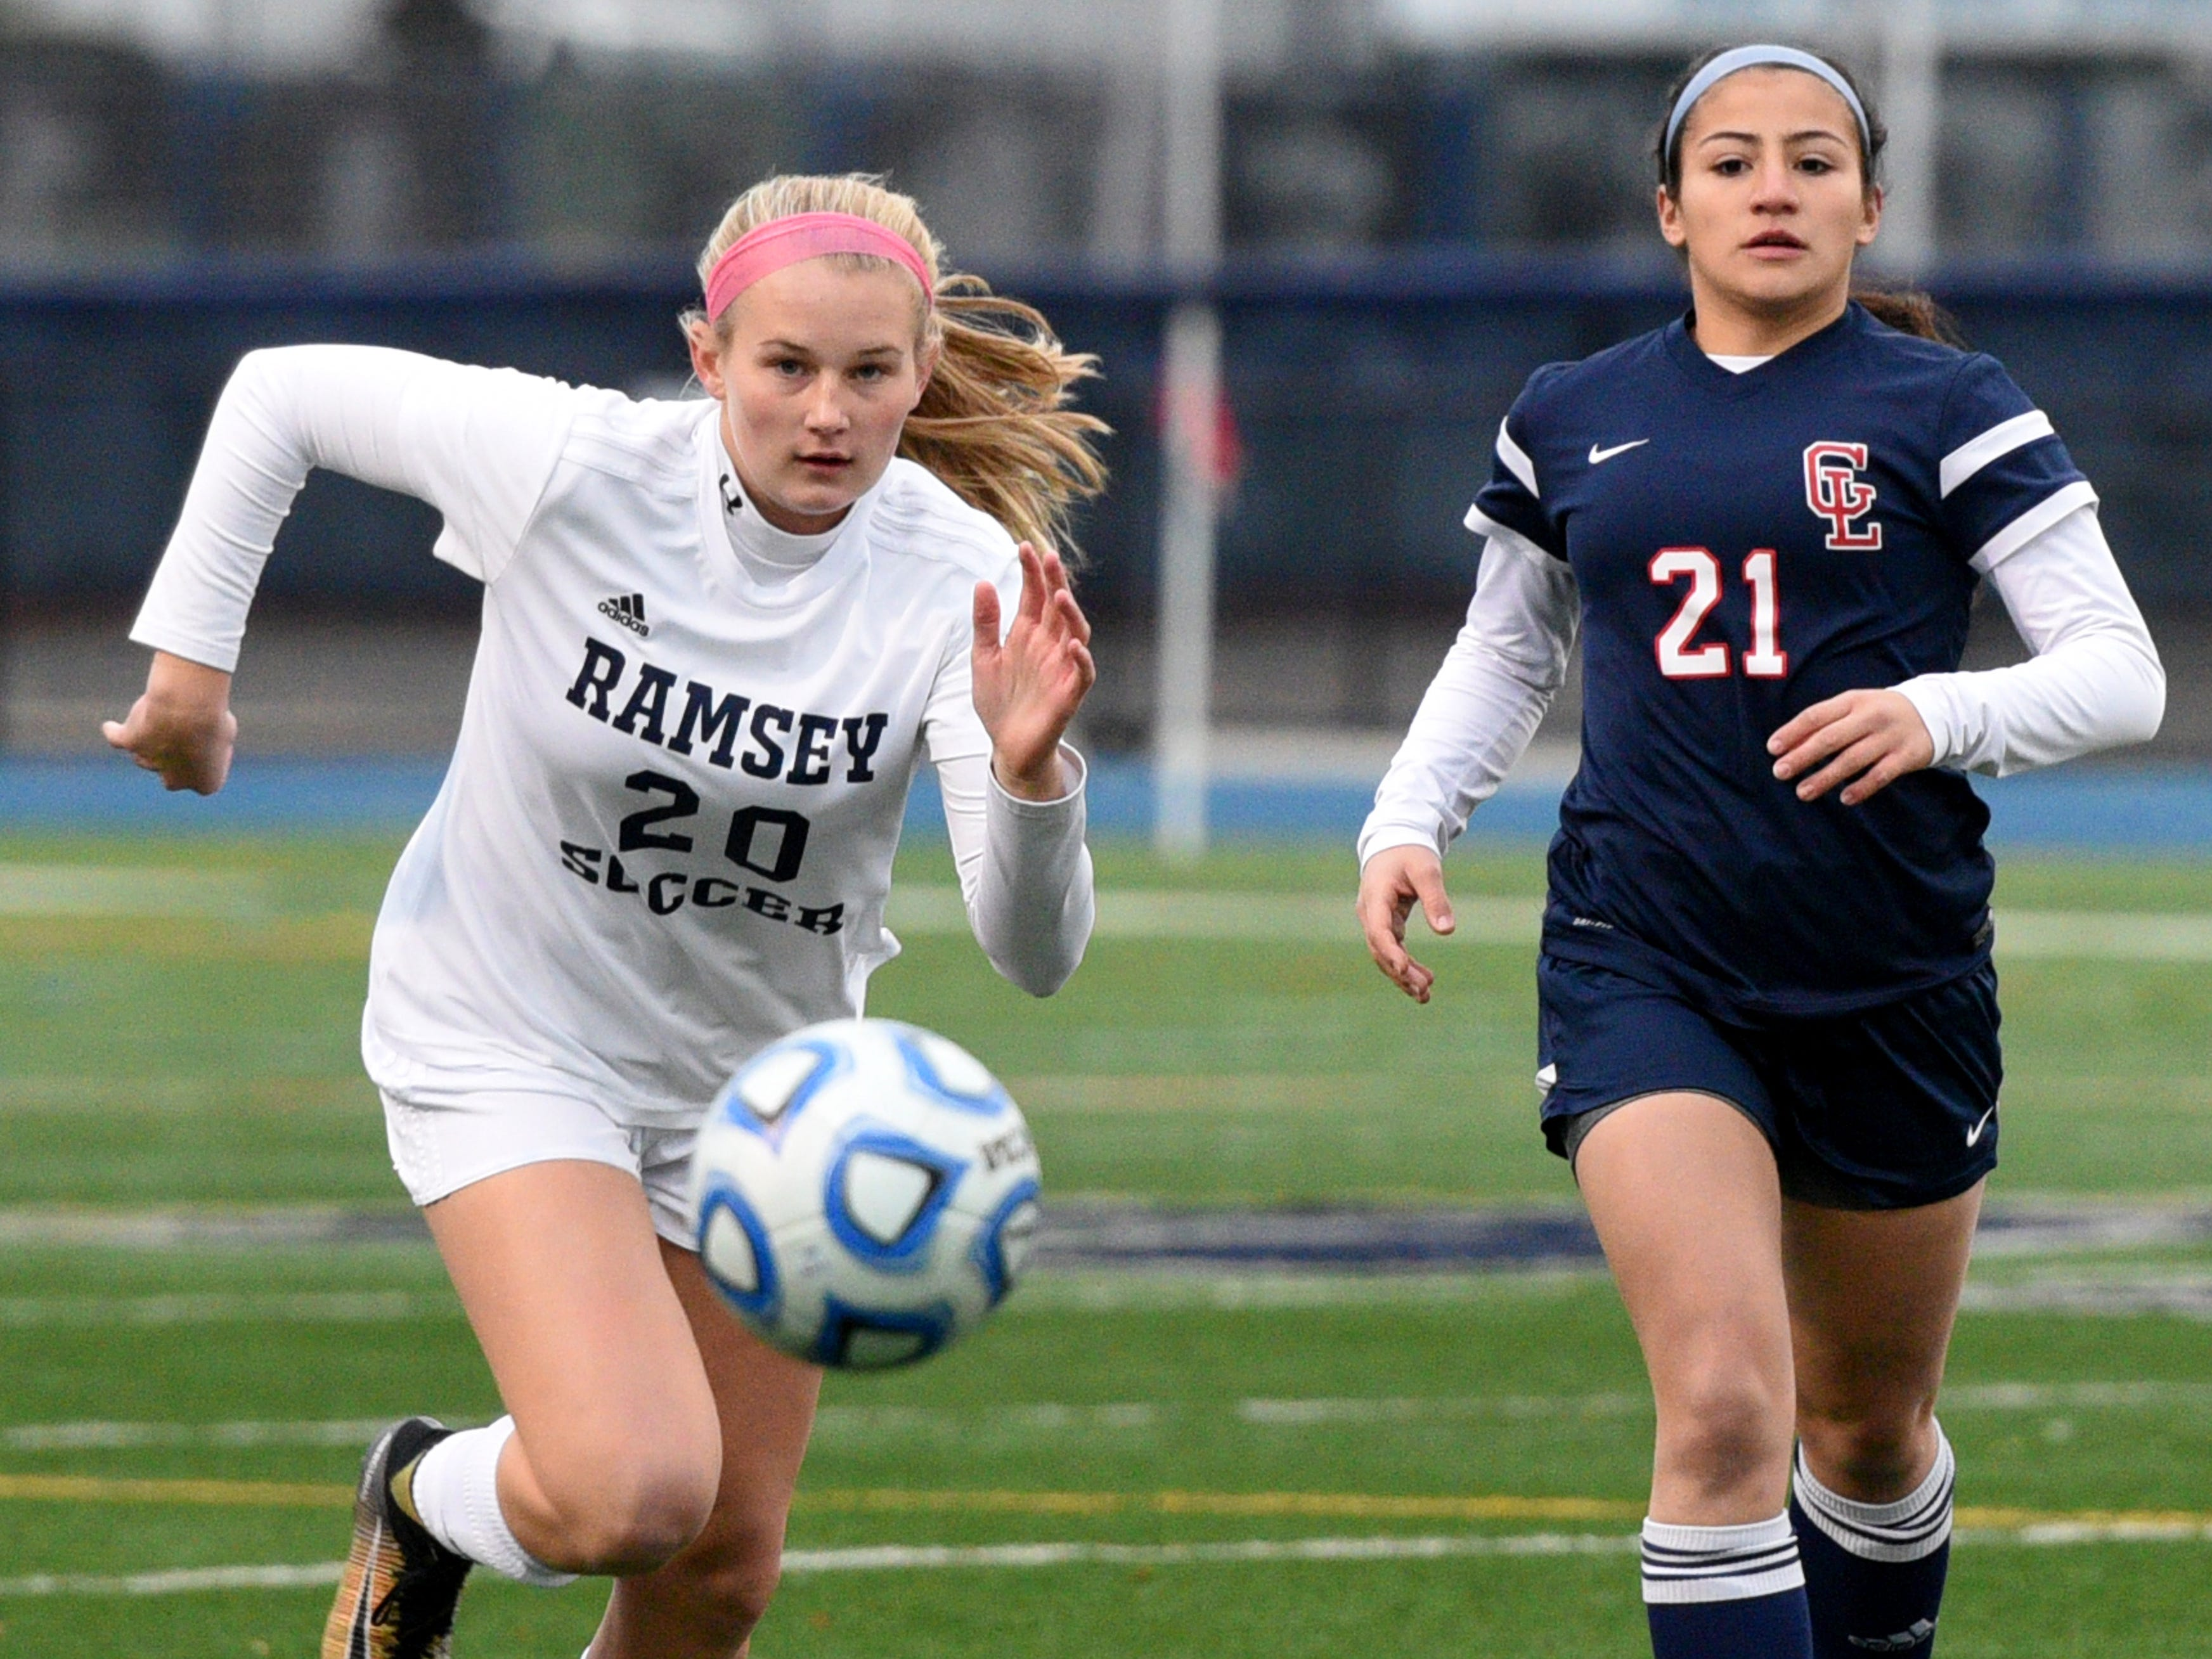 Ramsey's Caroline Schwanewede (20) and Governor Livingston's Catalina Abusada go for the ball during the Group II final on Sunday, Nov. 18, 2018 at Kean University.